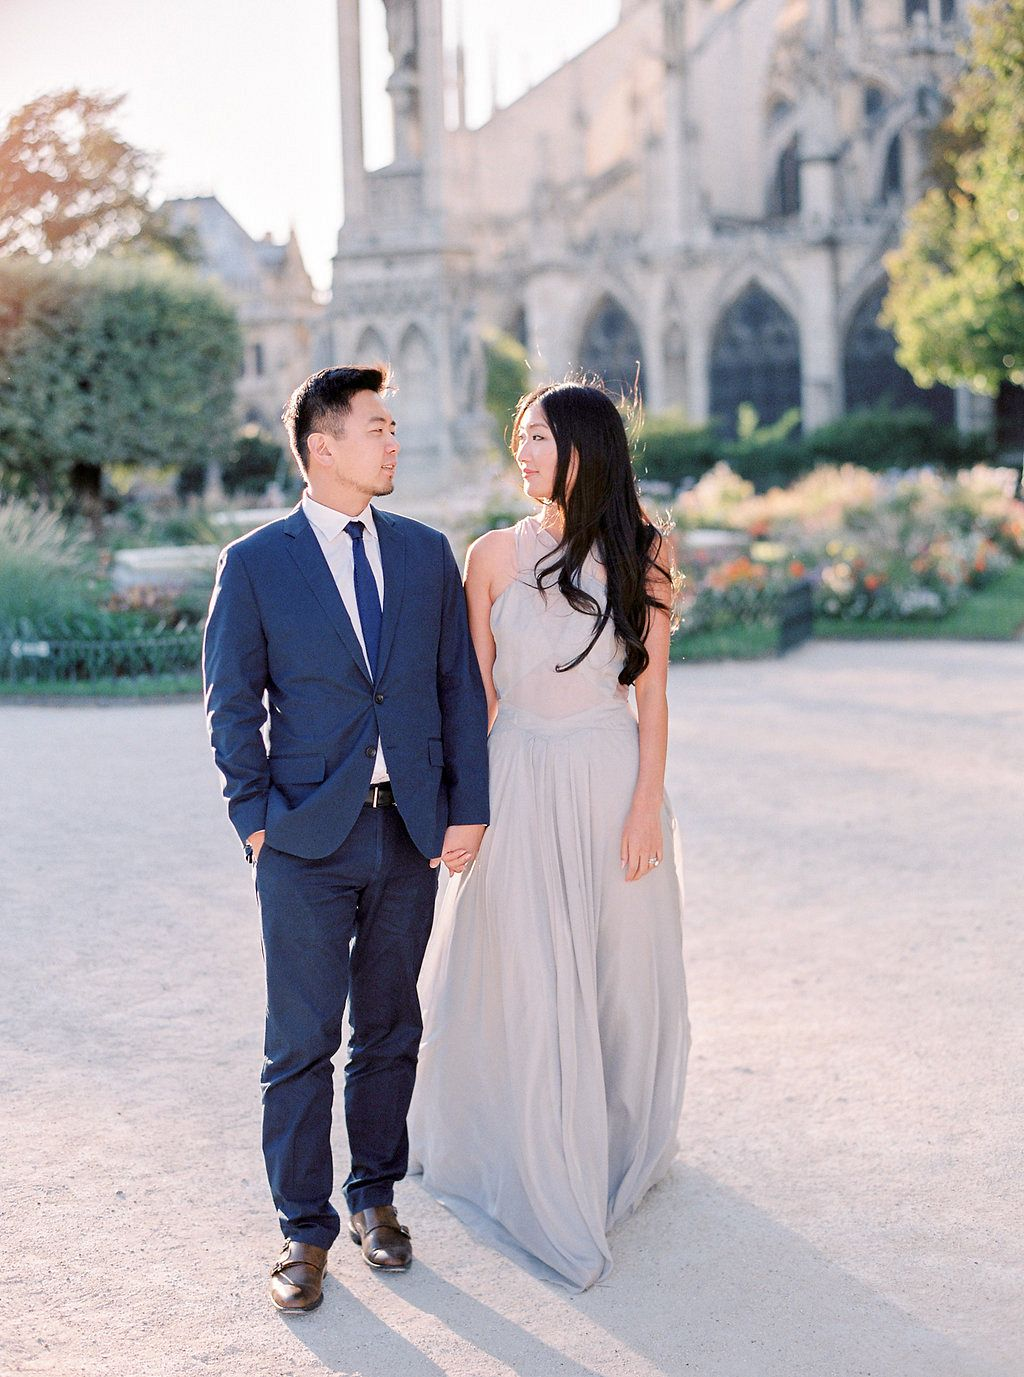 Perfect Engagement Outfit Inspiration In Paris By Le Secret D Audrey